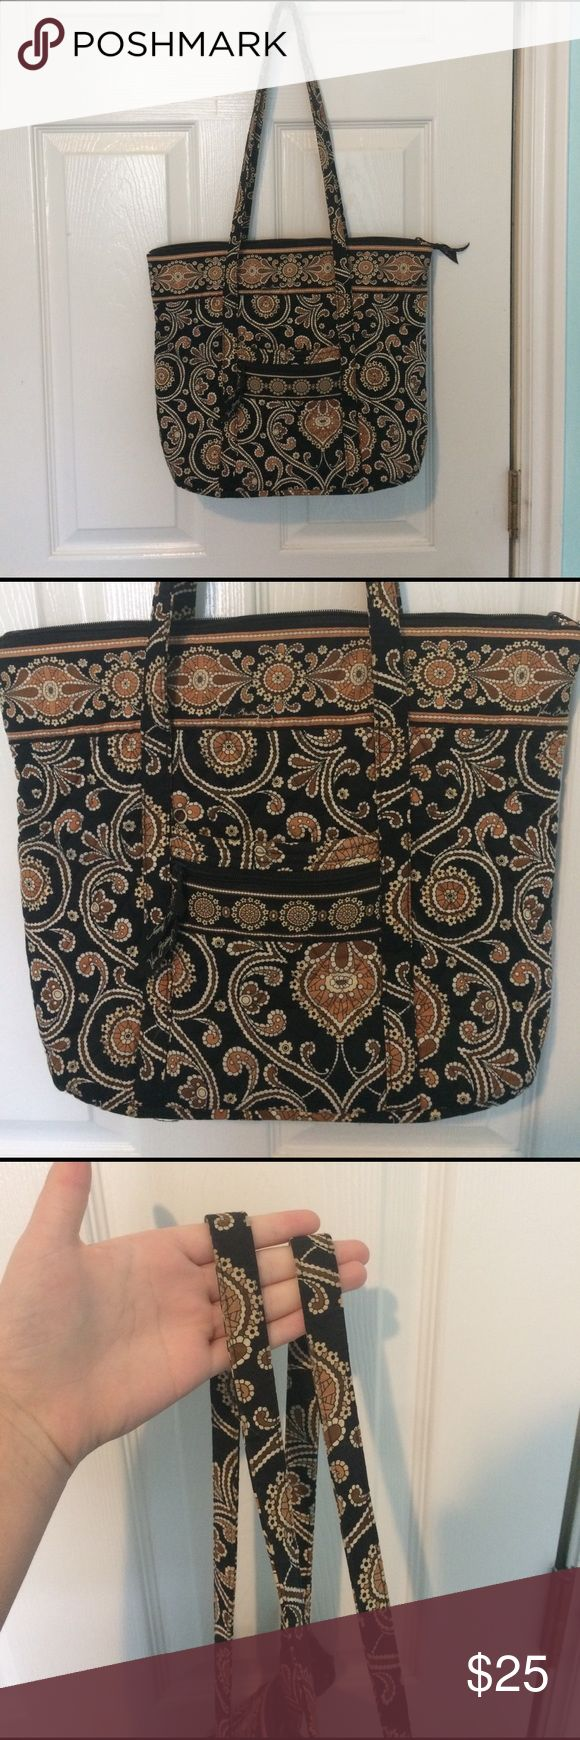 Beautiful Vera Bradley Handbag/Tote In incredible condition. Used maybe once. Colors are black & taupe/brown. Gorgeous neutral purse. Tags: coach, Louis Vuitton, Tommy Hilfiger, Ralph Lauren, vineyard vines, lilly pulitzer. GUC EUC BUC Vera Bradley Bags Shoulder Bags